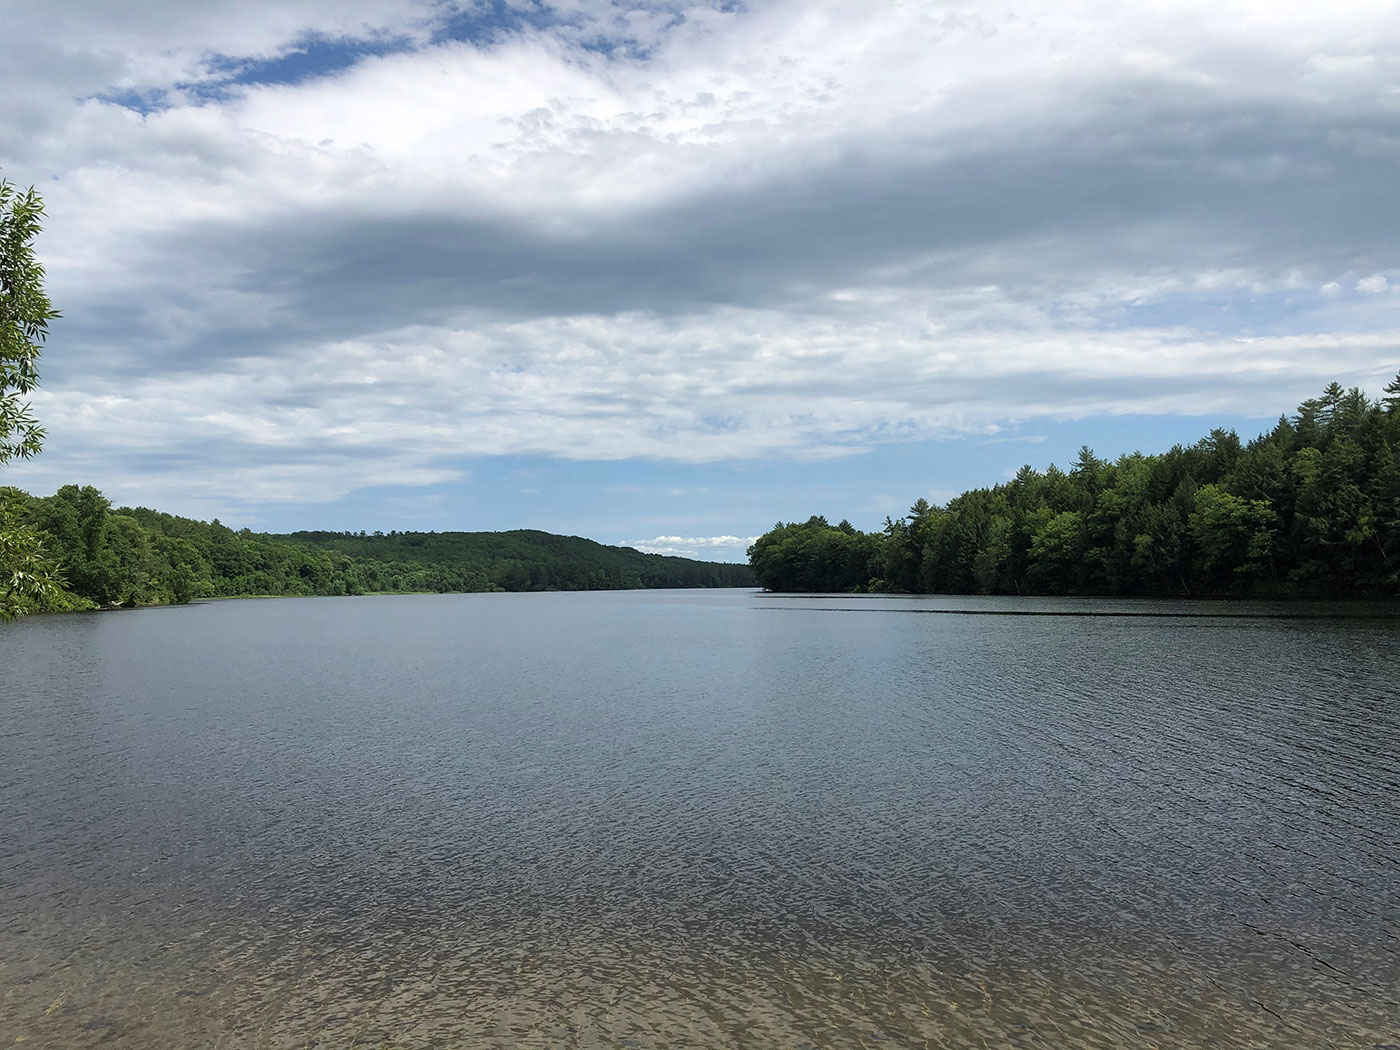 view up Kennebec River